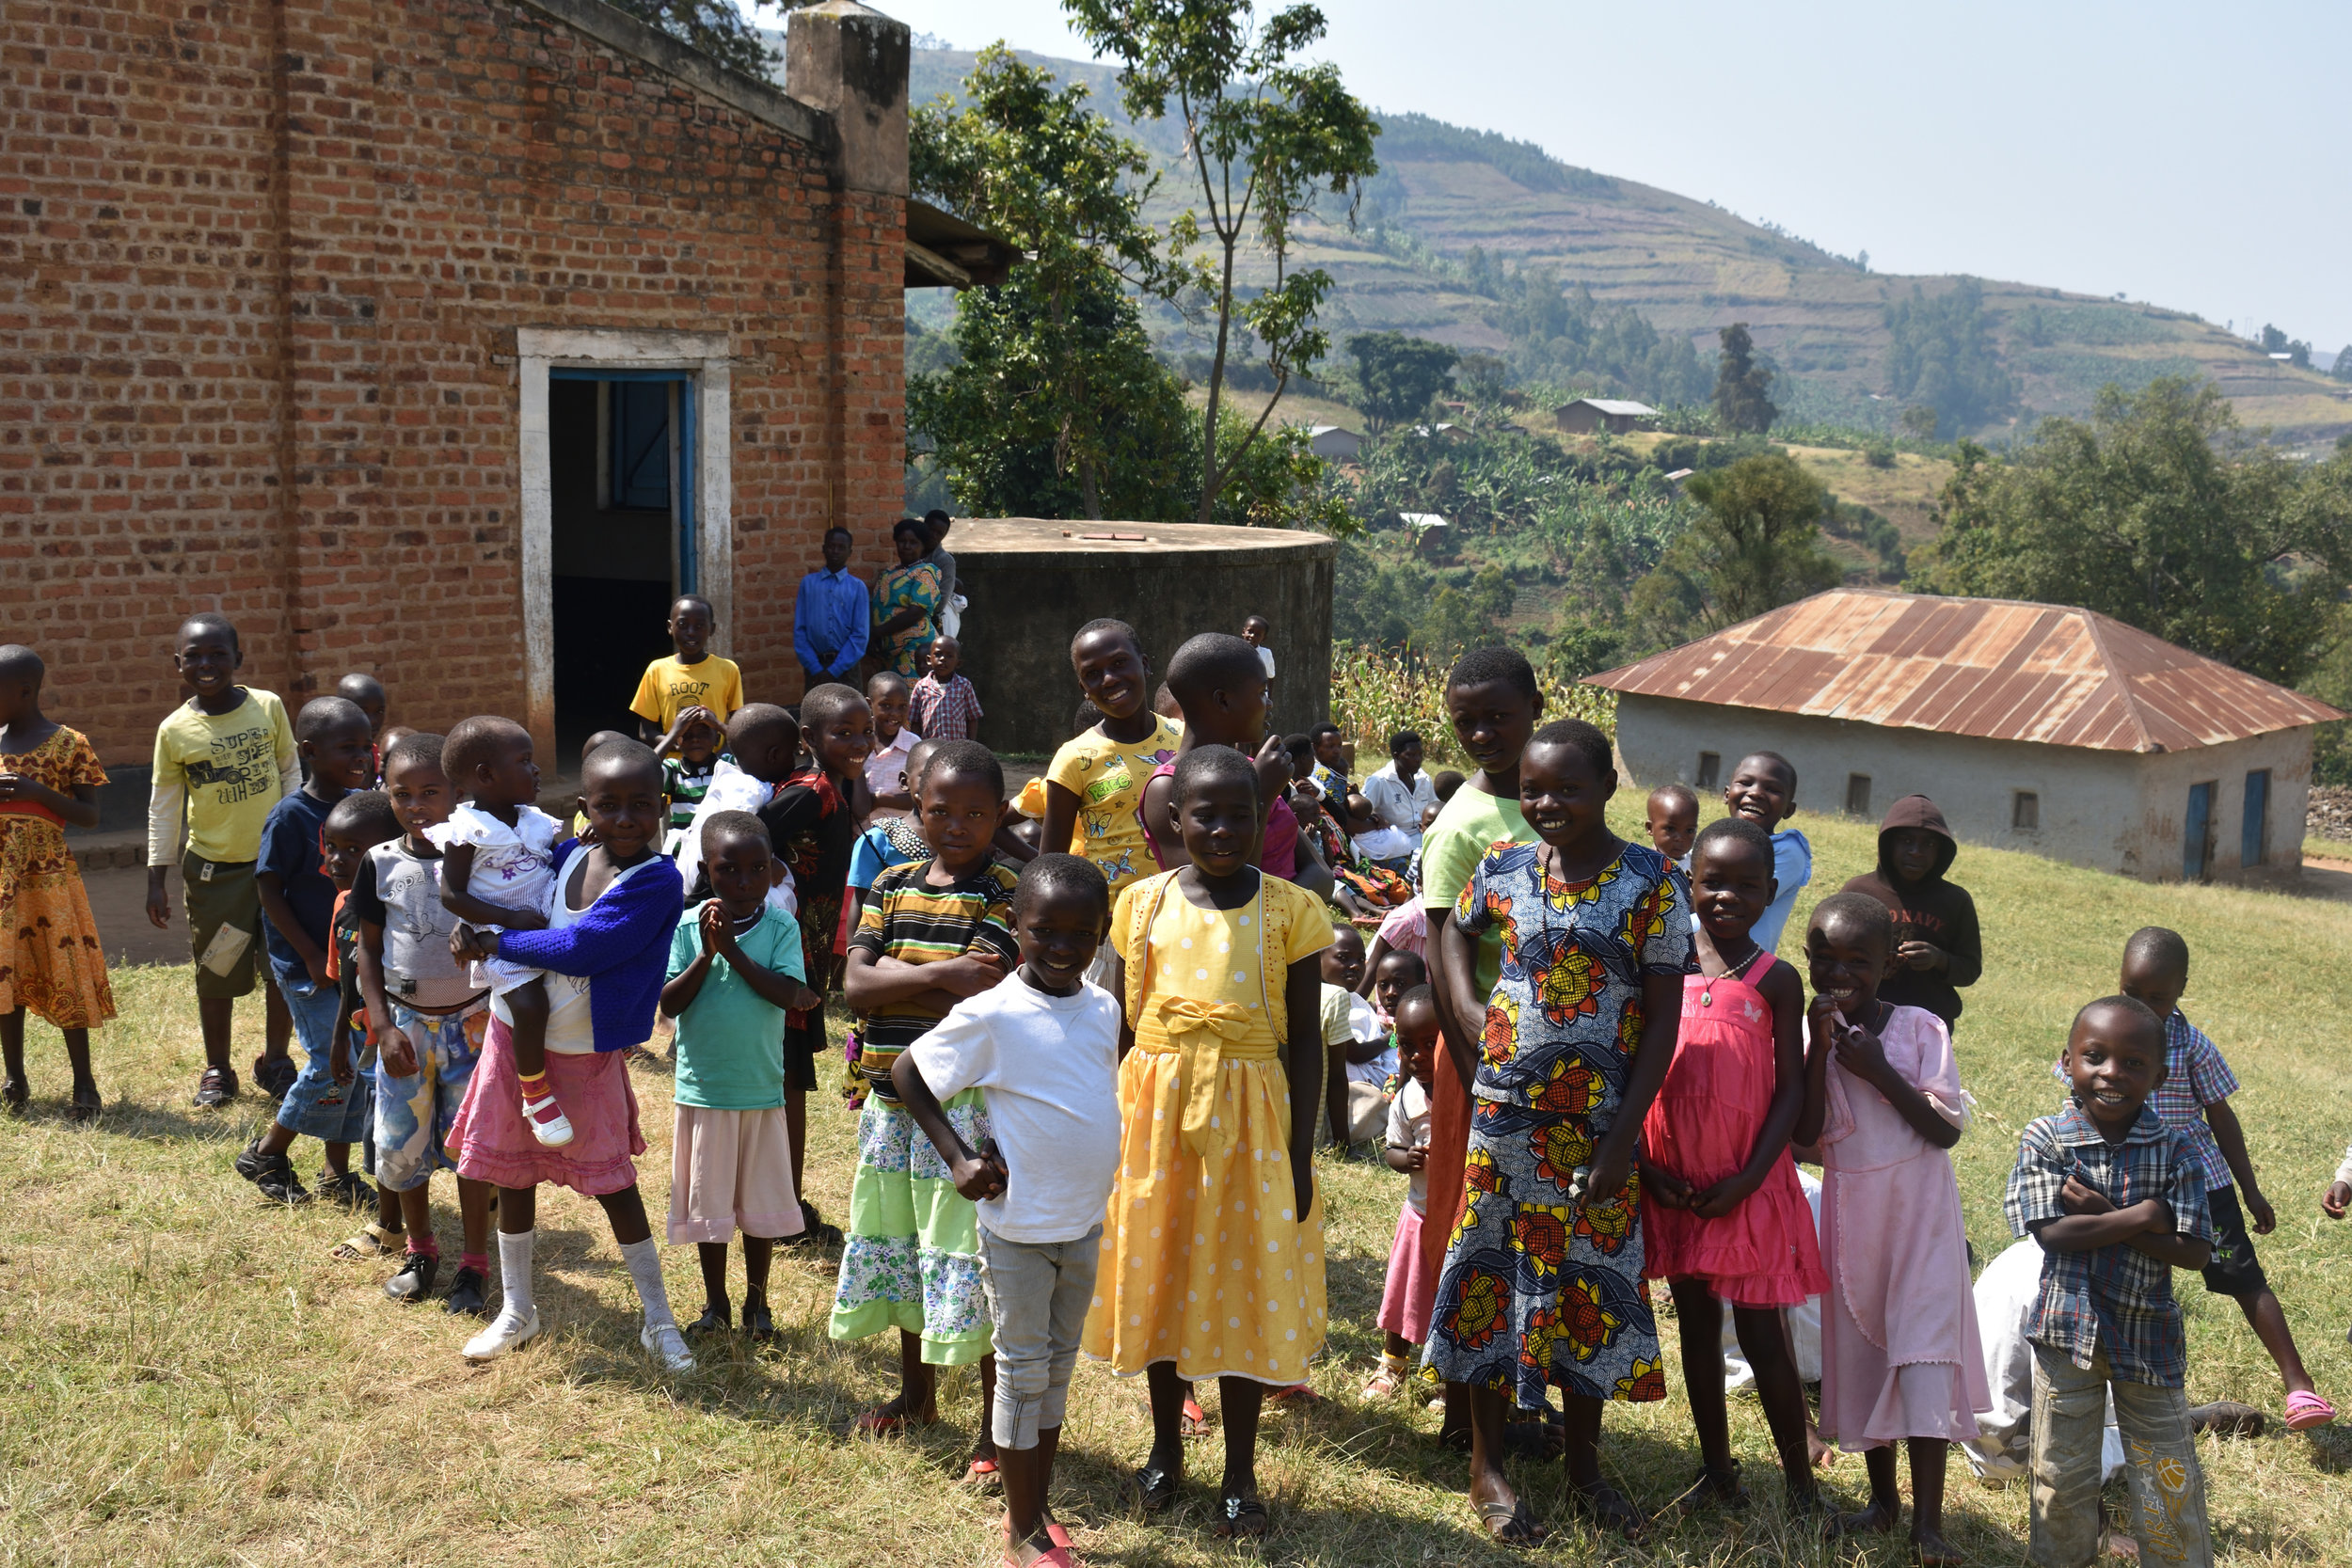 The Village of Kigarama, Uganda